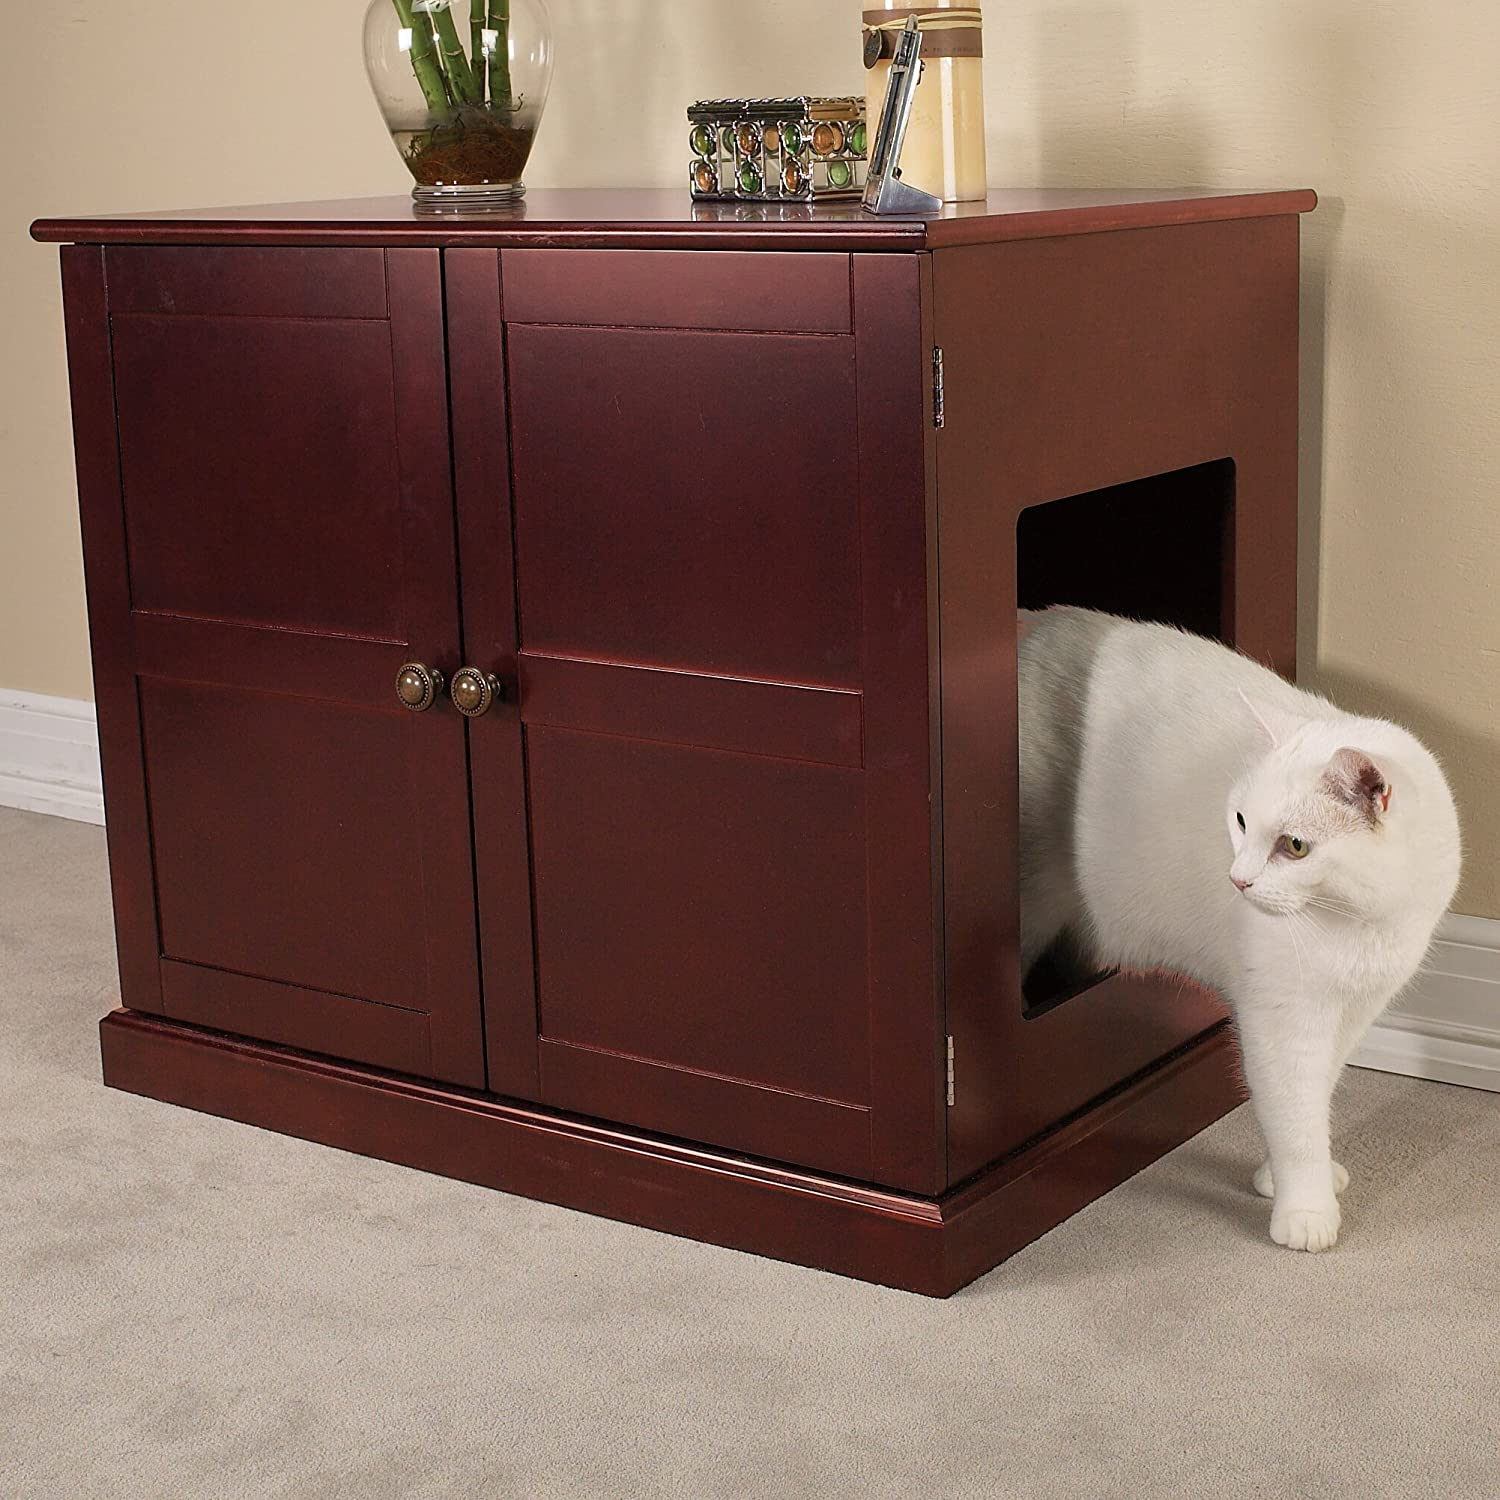 Awesome Amazon.com : Meow Town Concord Cat Litter Cabinet, Mahogany Finished Cat  Litter Concealer : Pet Supplies